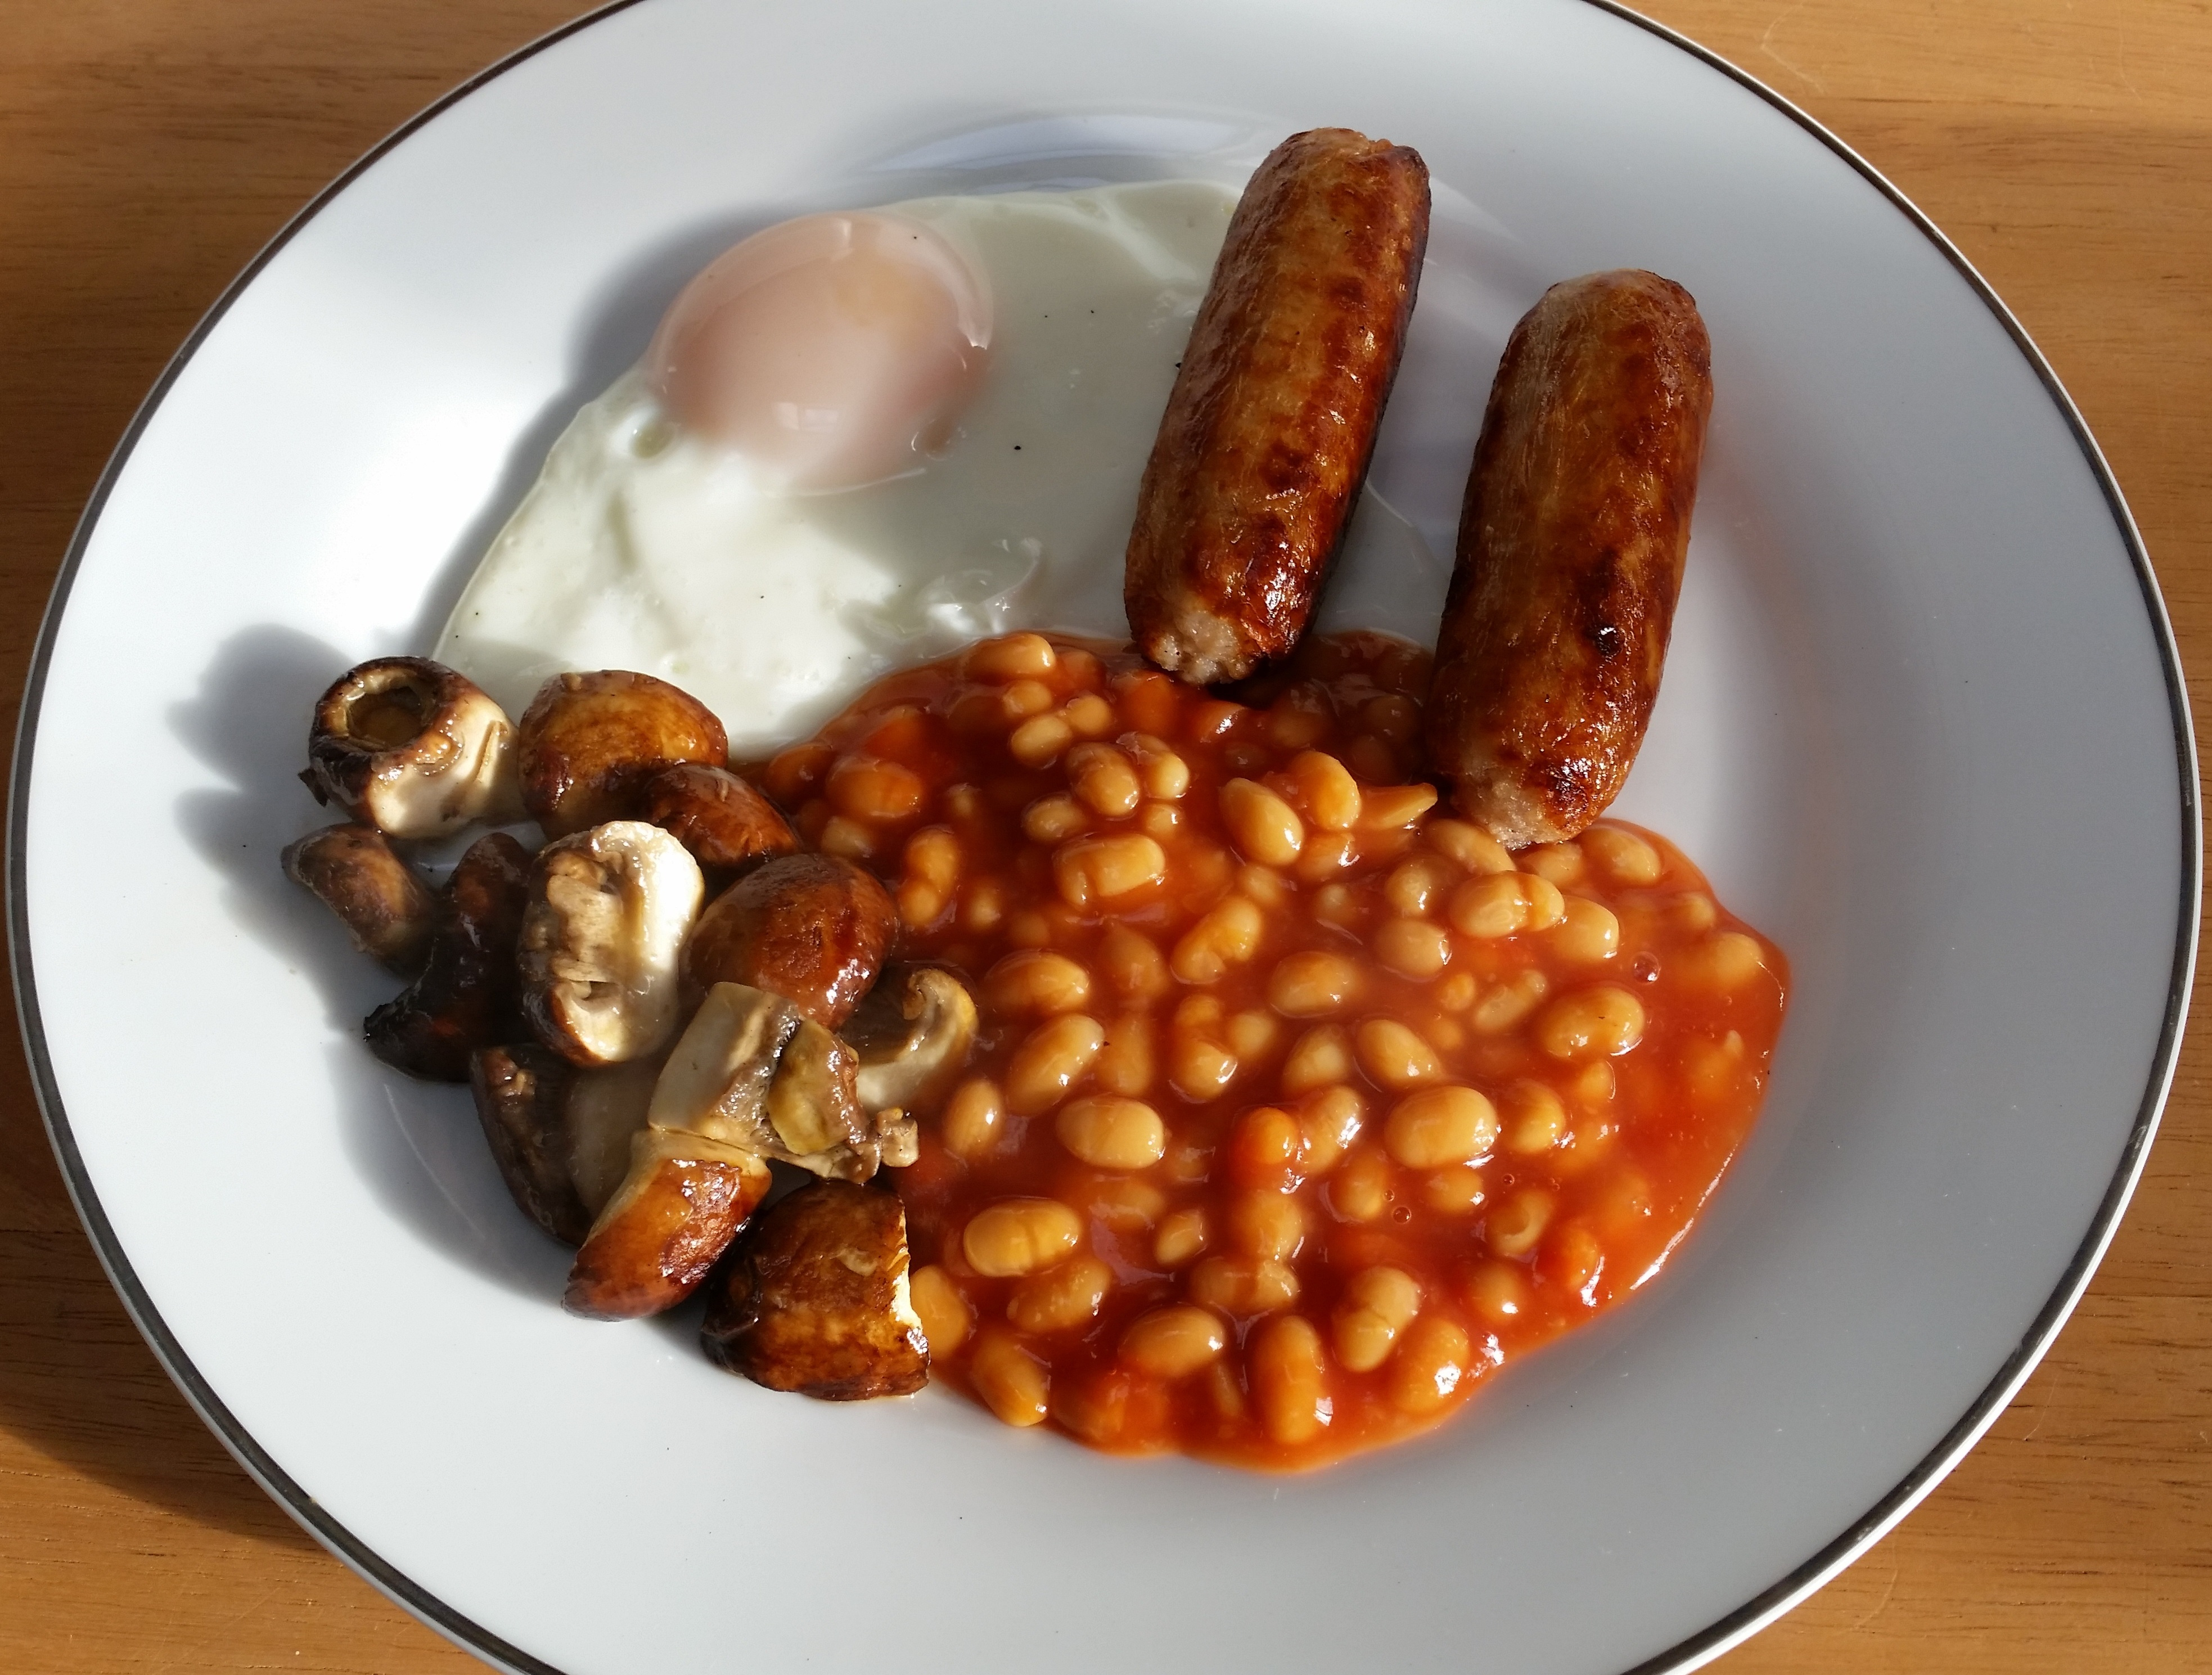 Fried Egg Sausages Baked Beans And Mushrooms Large